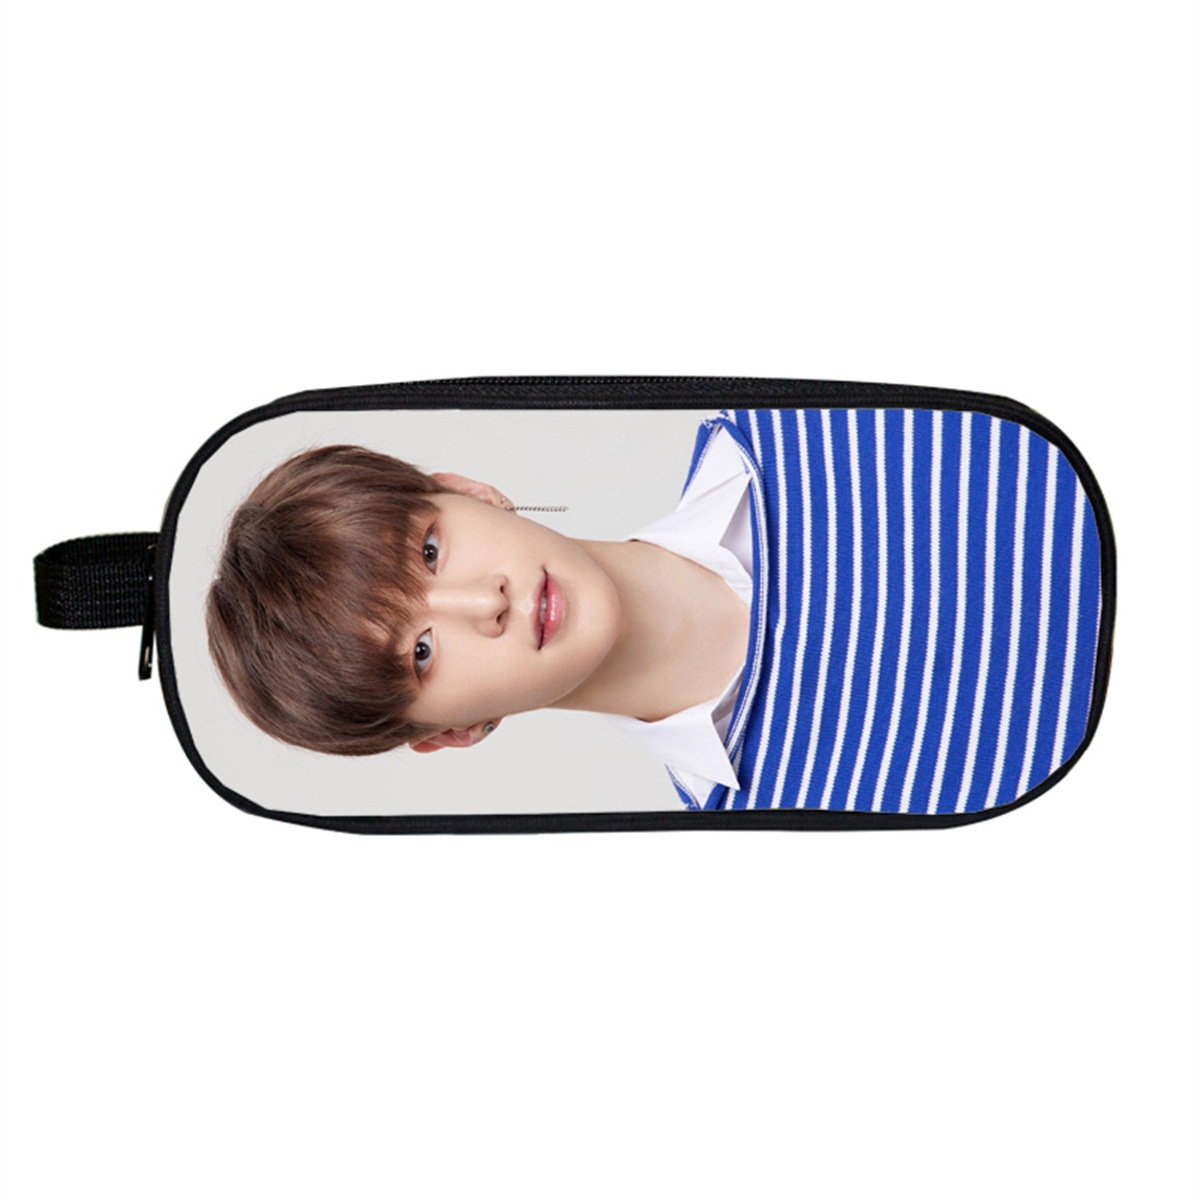 Idol Trainee-Style Cheng Cheng Chen Li Agricultural Primary School STUDENT'S Pencil Case Add Logo Stationery Bag